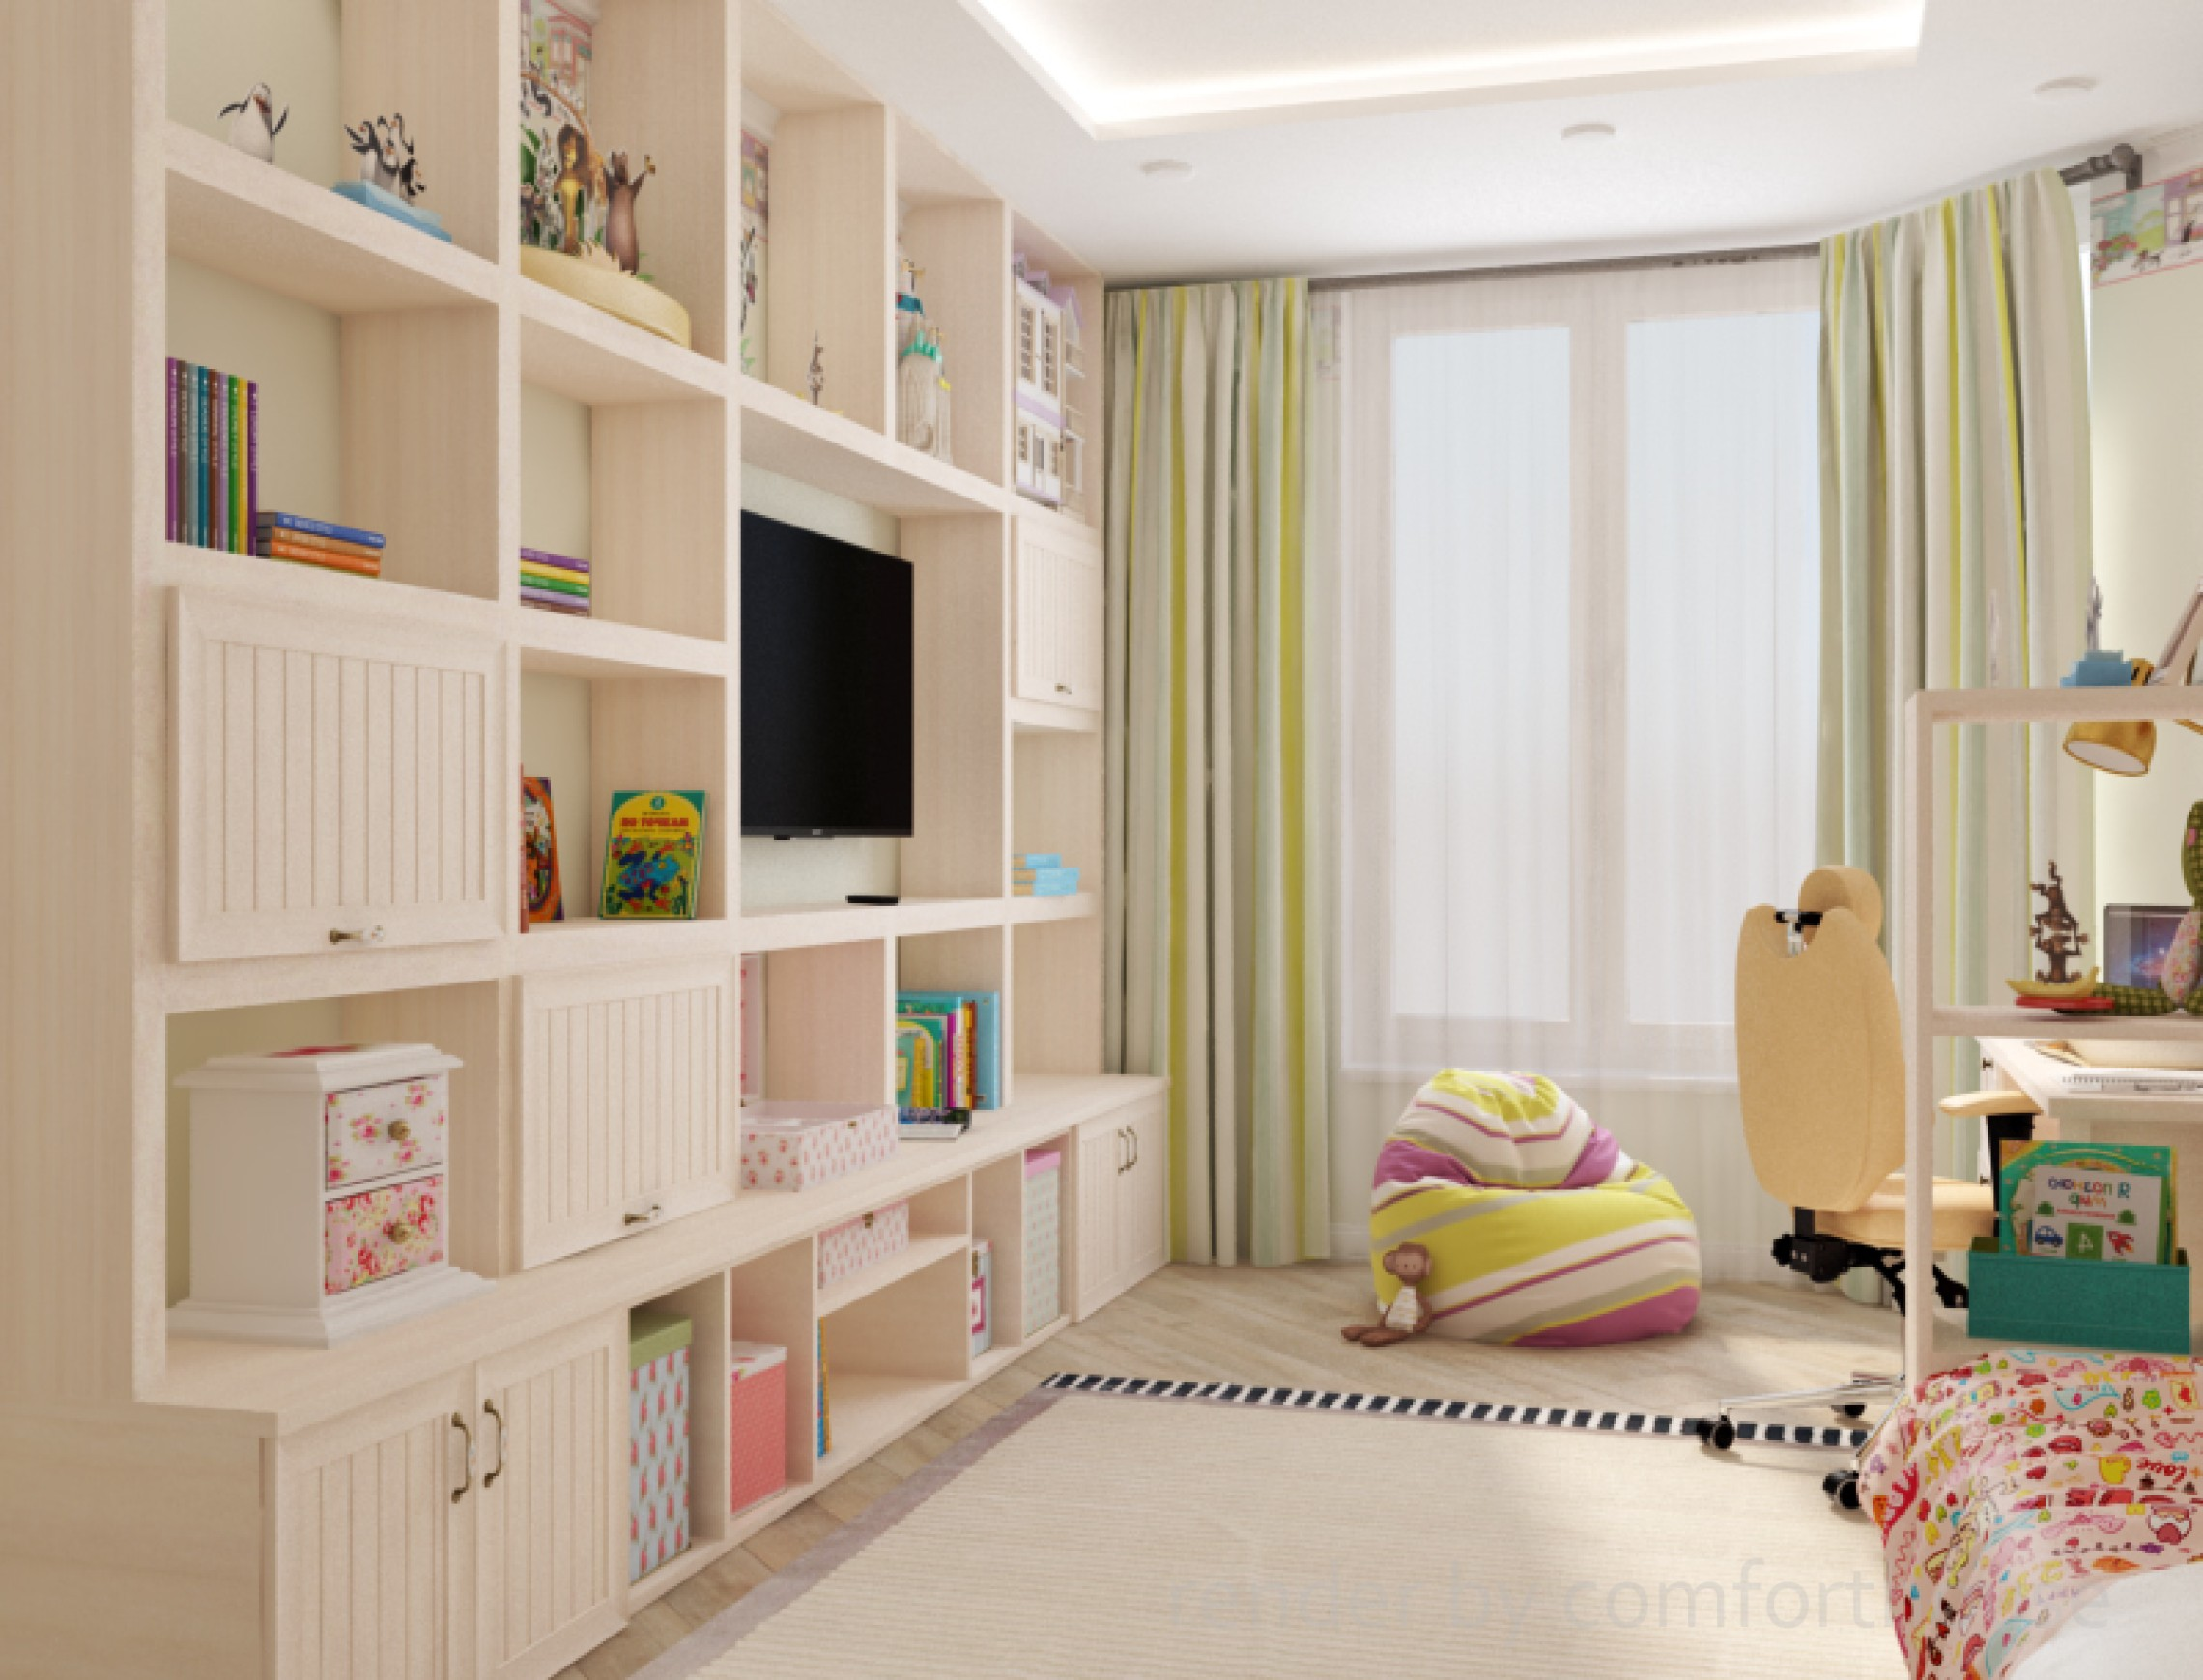 children's room in bright colors